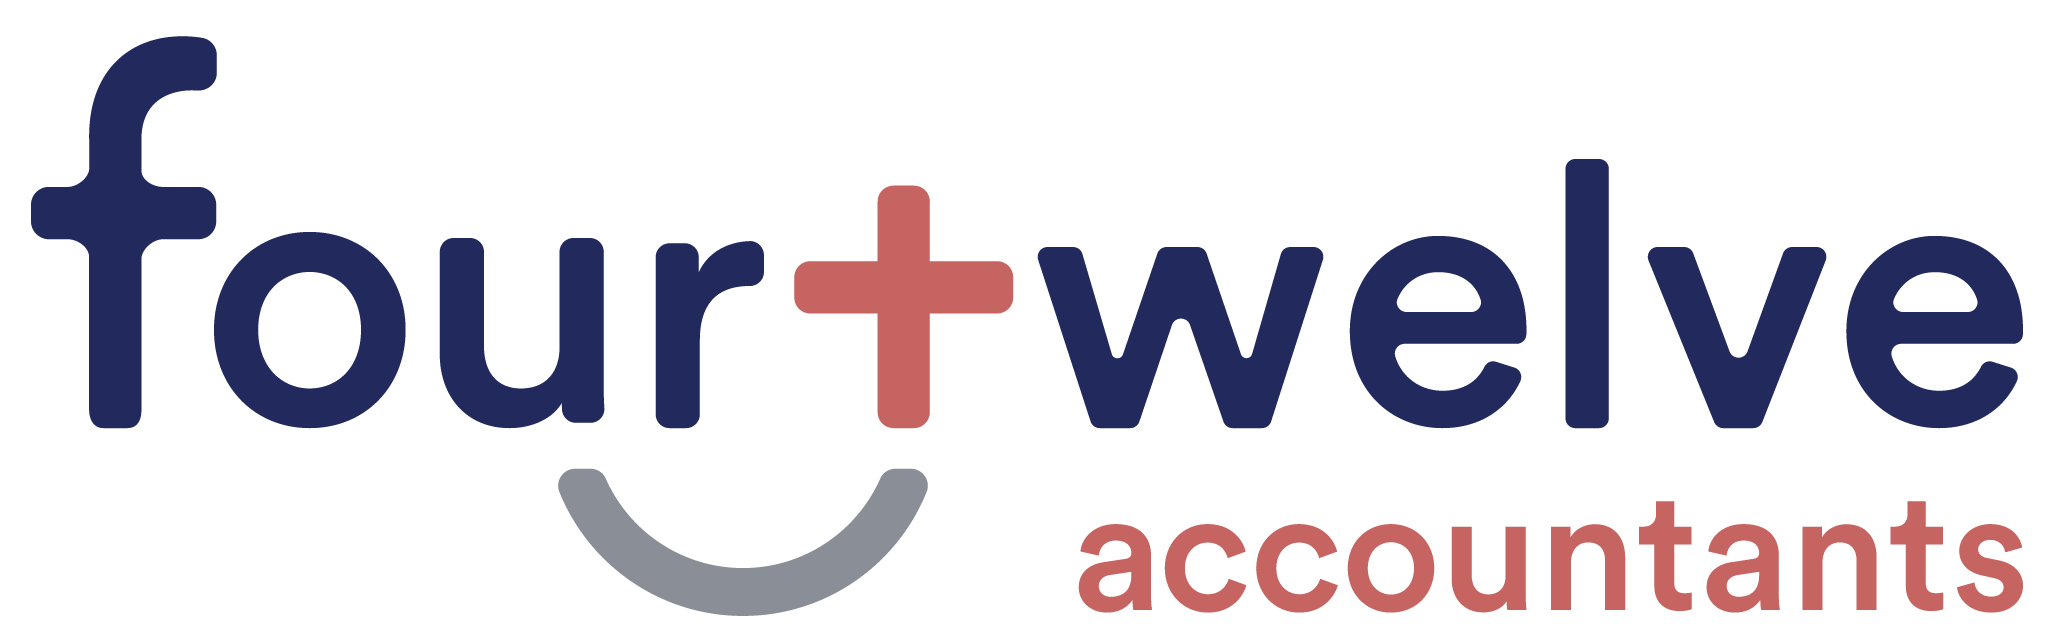 Four_Twelve_Wordmark_coral_accountants-01